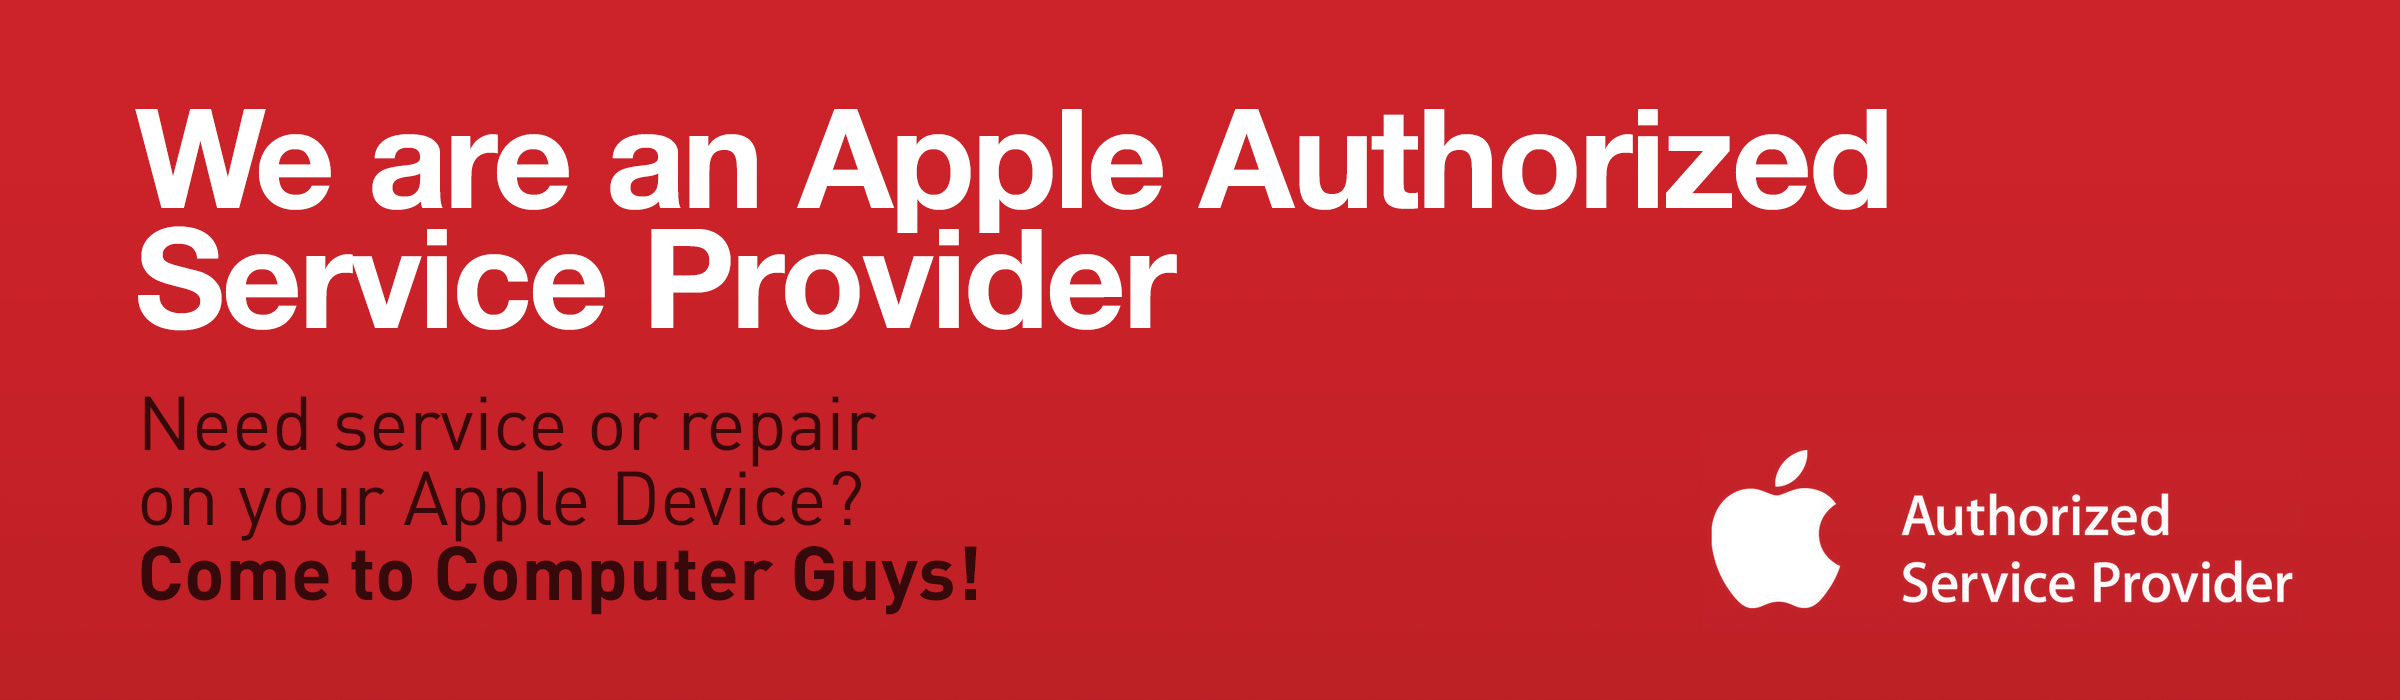 Apple Authorized Service Provider